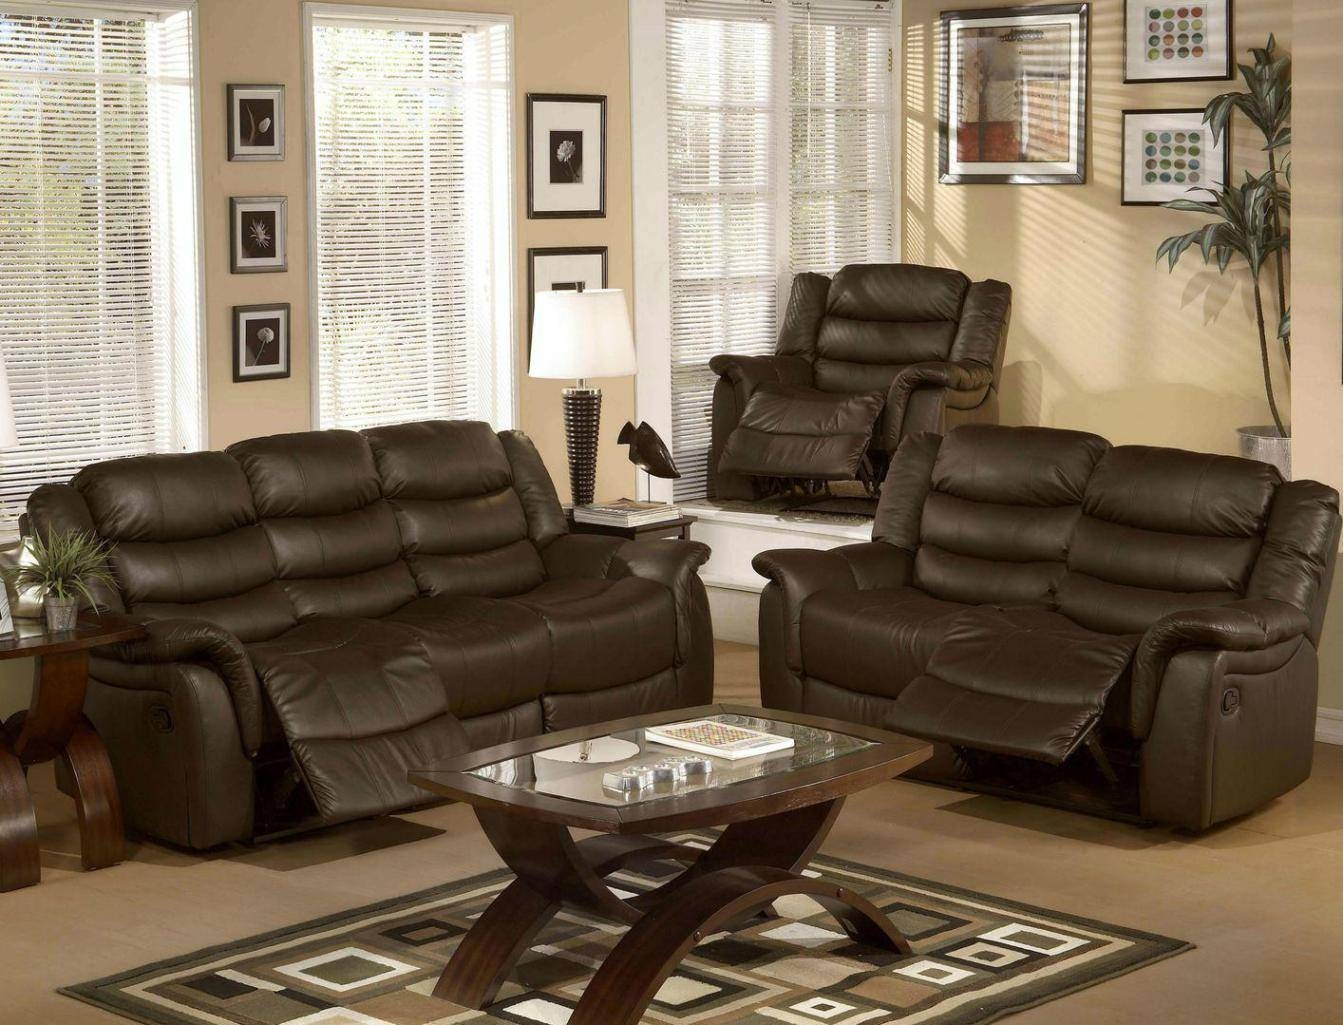 Sofa Loveseat Recliner Sets : Doherty House - Best Choices in Sofa Loveseat And Chairs (Image 25 of 30)